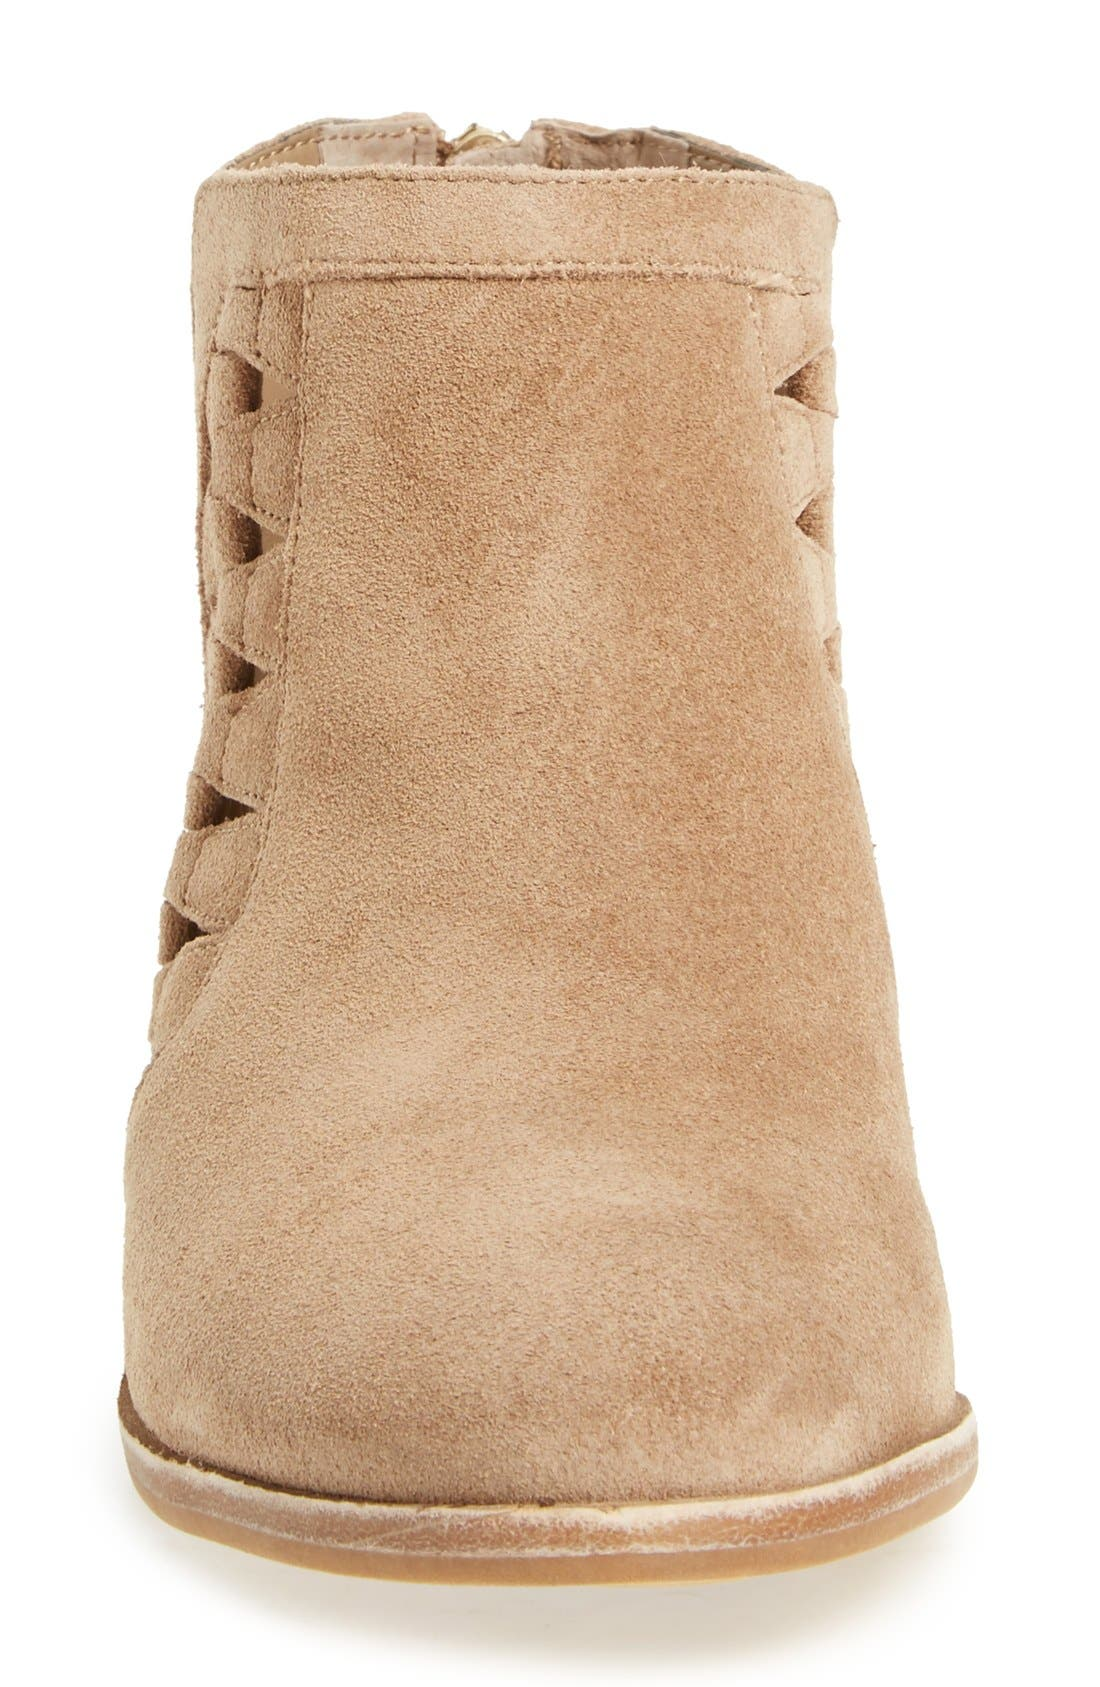 Alternate Image 3  - Vince Camuto 'Peera' Cutout Bootie (Women) (Nordstrom Exclusive)